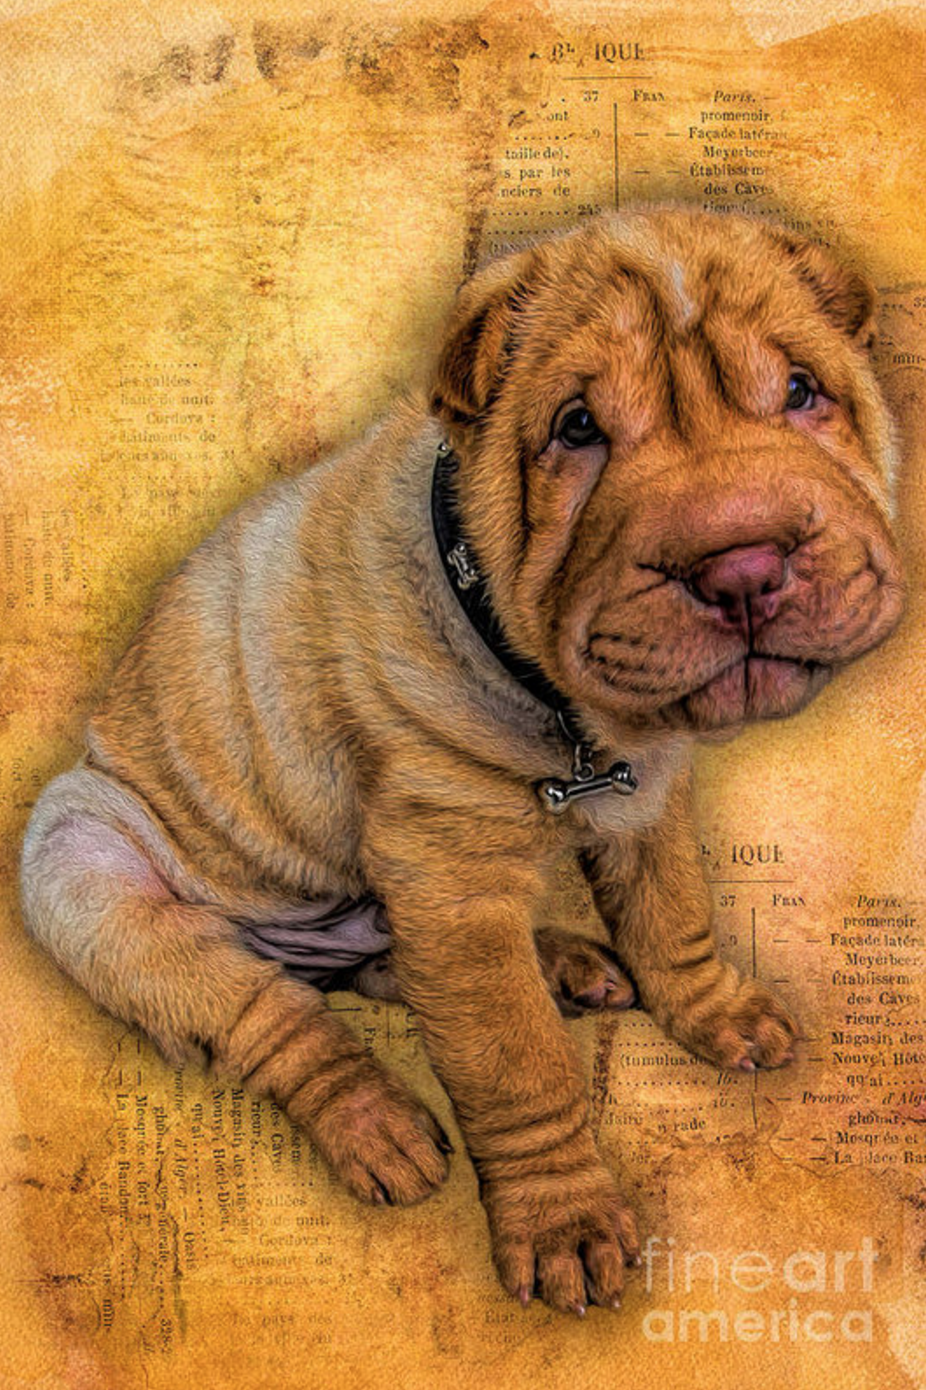 shar-pei,hippopotamus head,toad mouth,Warrior Scowl,calabash-shaped head,roof tile mouth,size